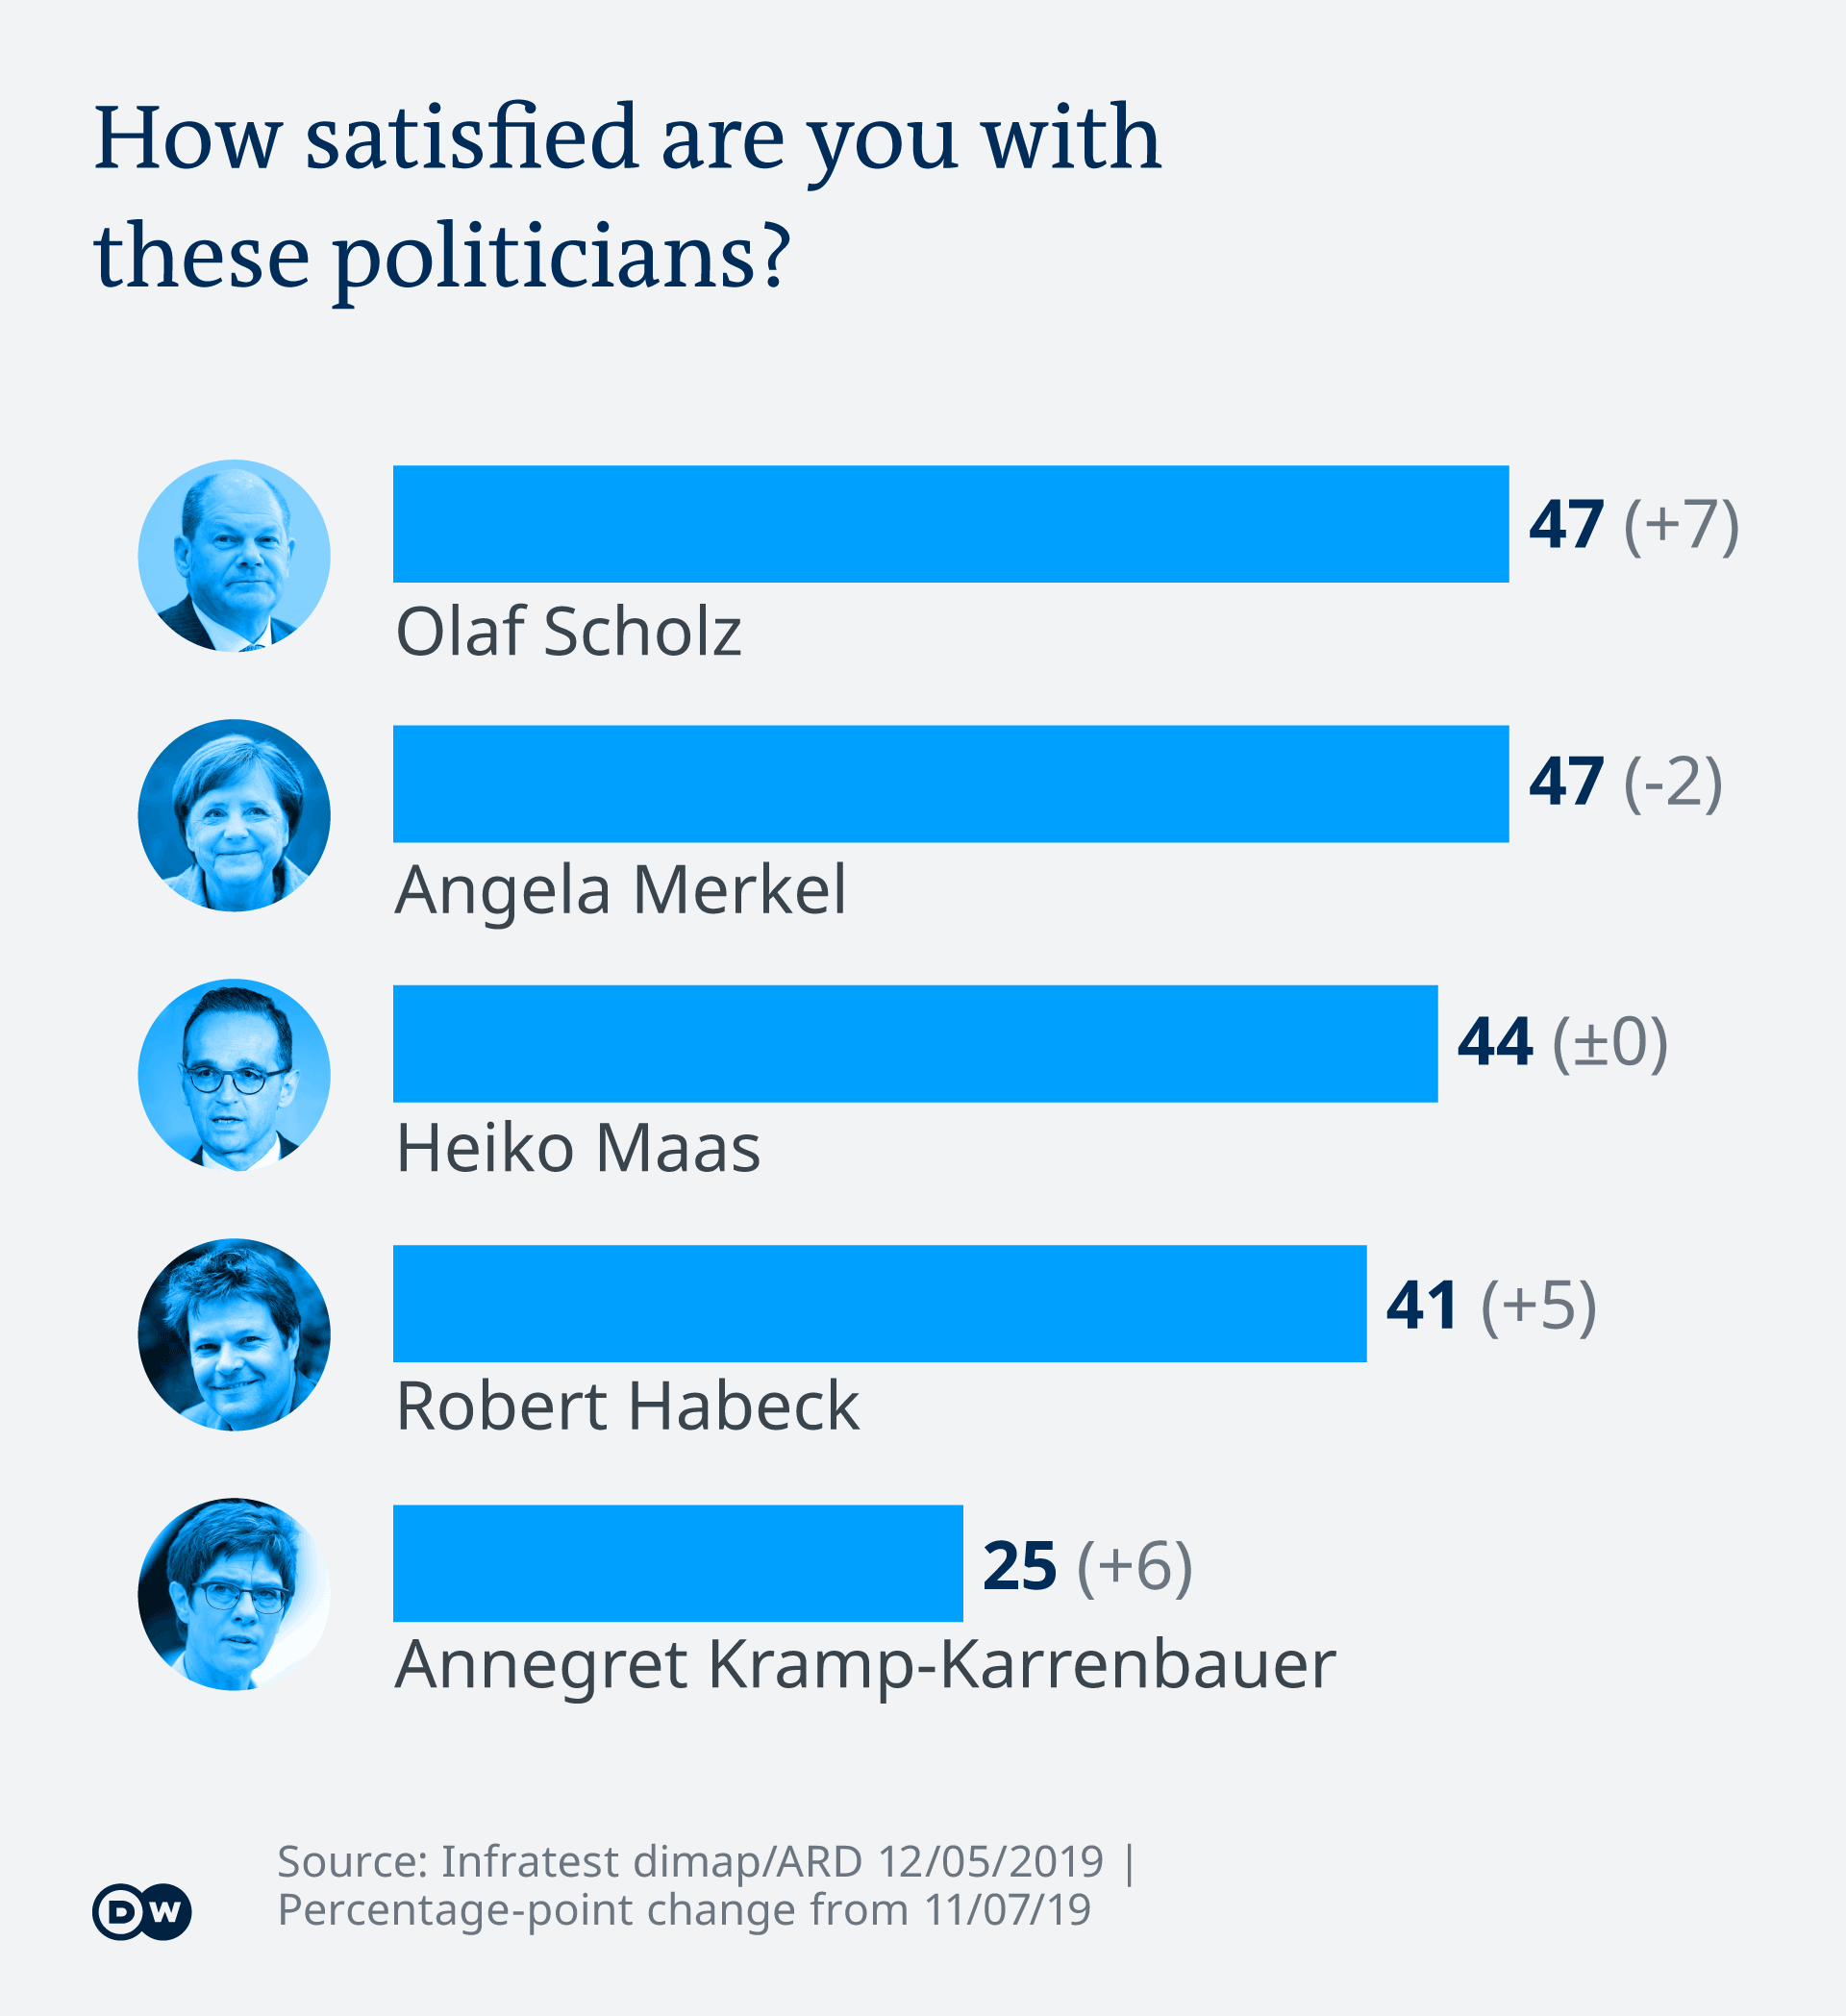 Infographic showing satisfaction with politicians